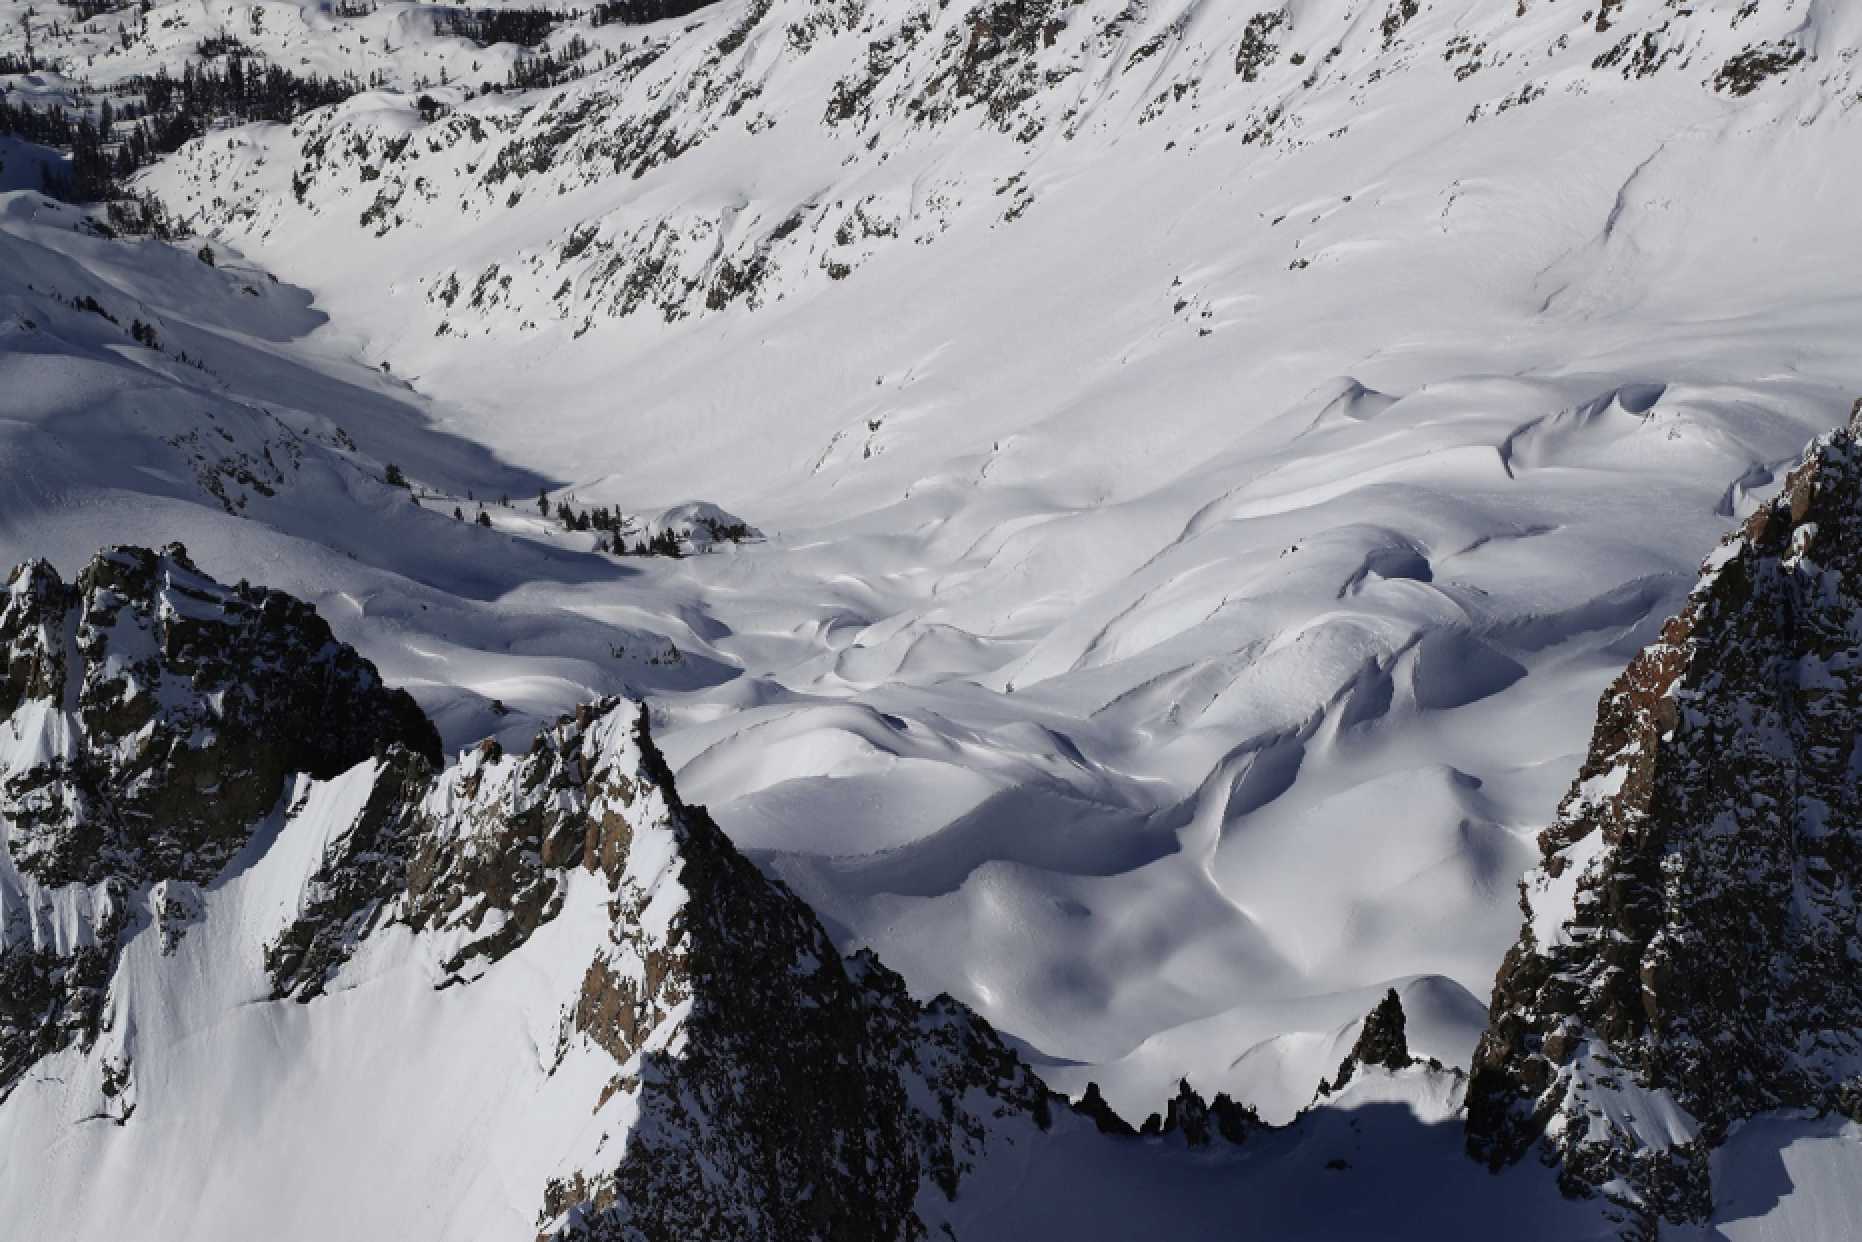 In 2017, the Friant-sponsored ASO surveys of the San Joaquin documented snow drifts with faces of 20 to 40 feet (pictured above) and snow-depths of over 90 feet, the deepest measured by the program to-date. (Photo credit: New York Times)